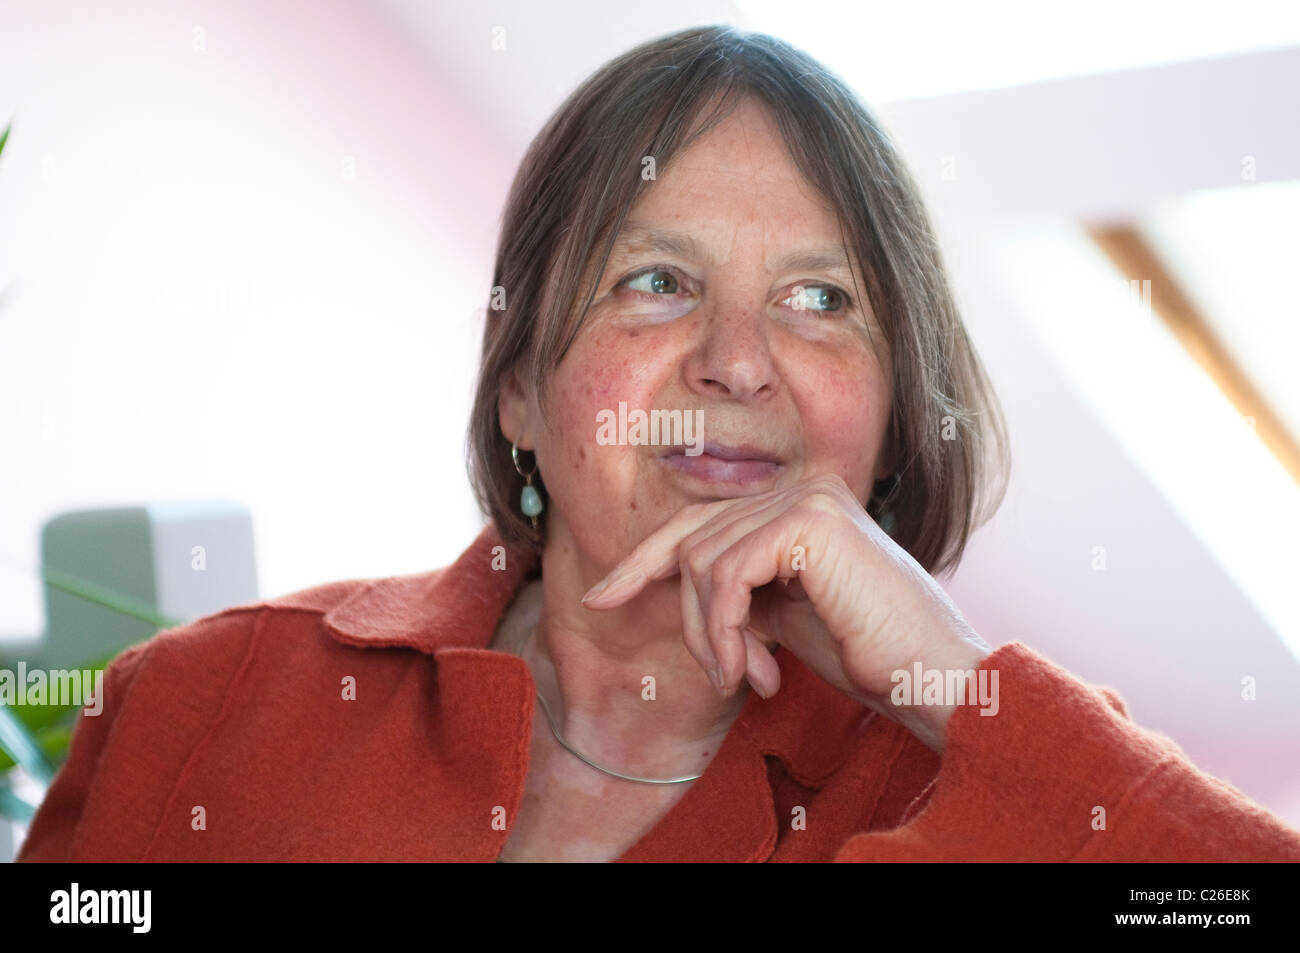 Middle aged woman looking relaxed and happy - Stock Image